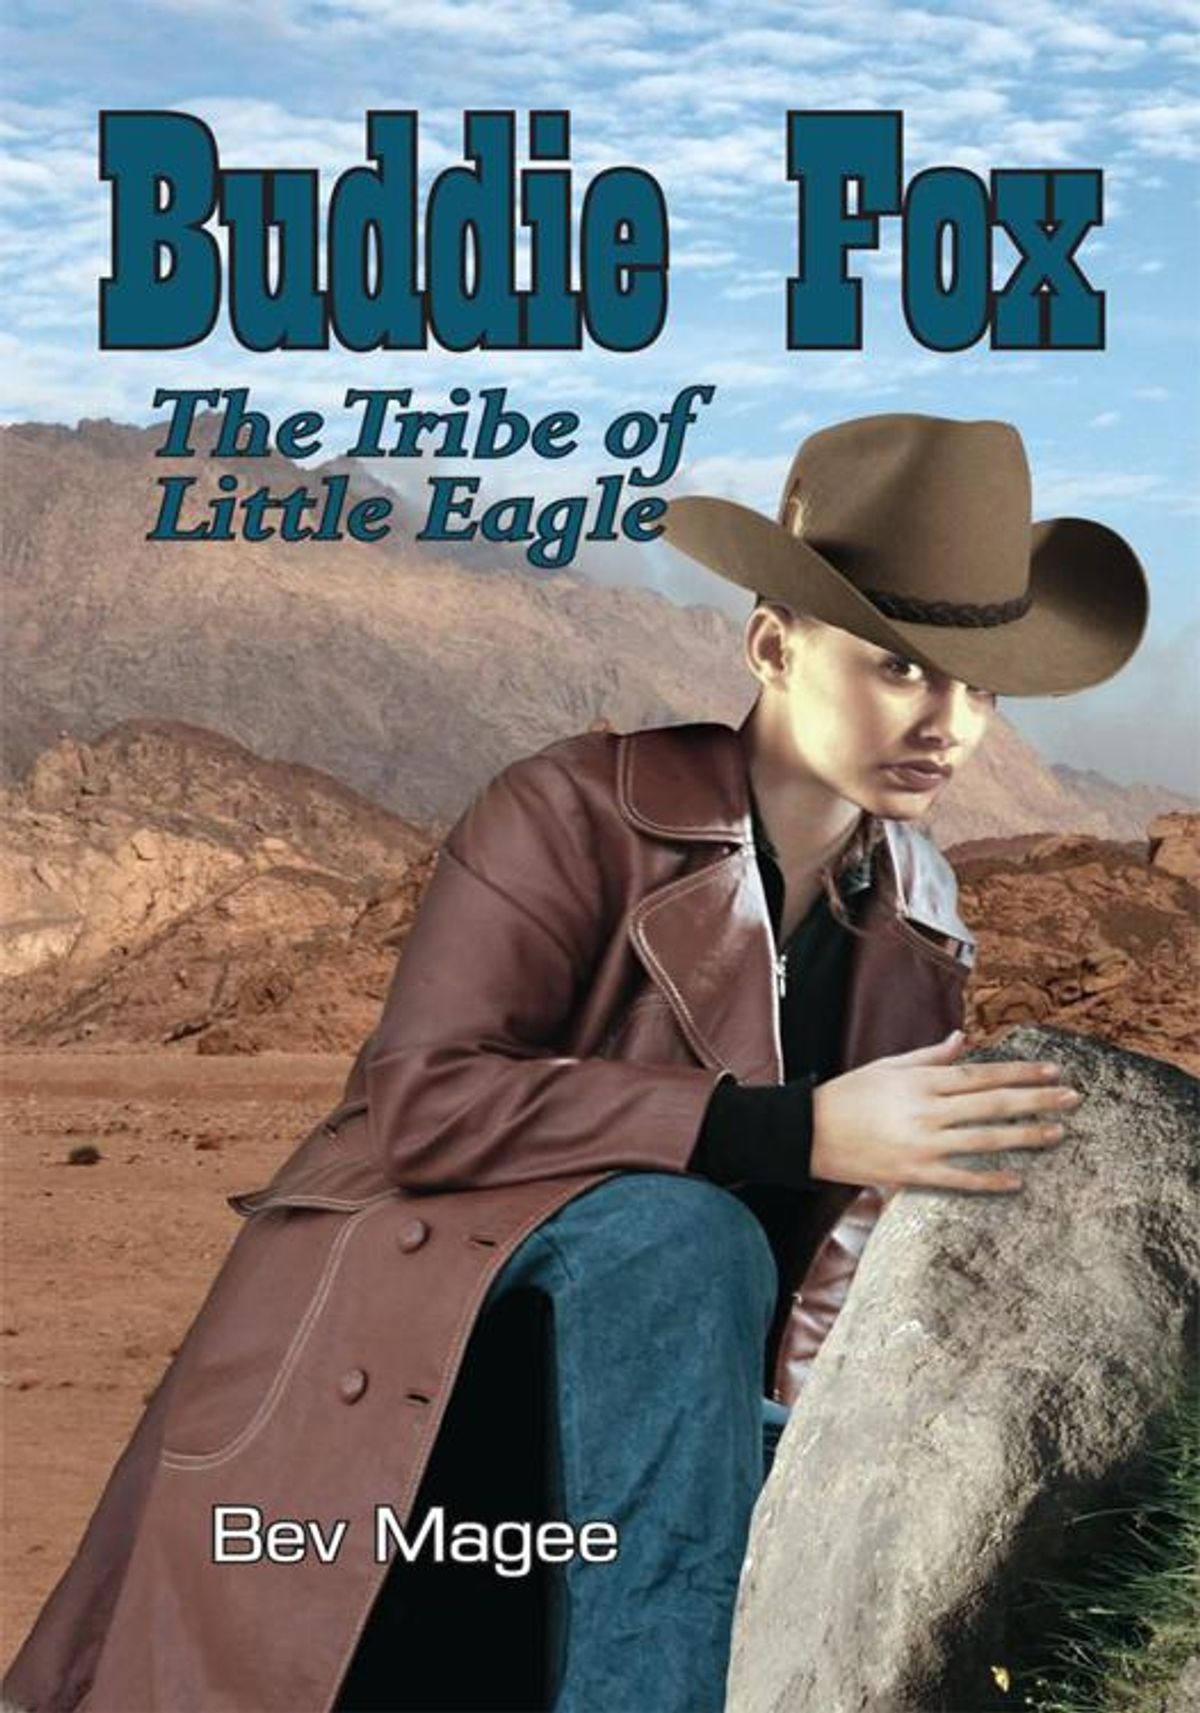 Buddie Fox: The Tribe of Little Eagle